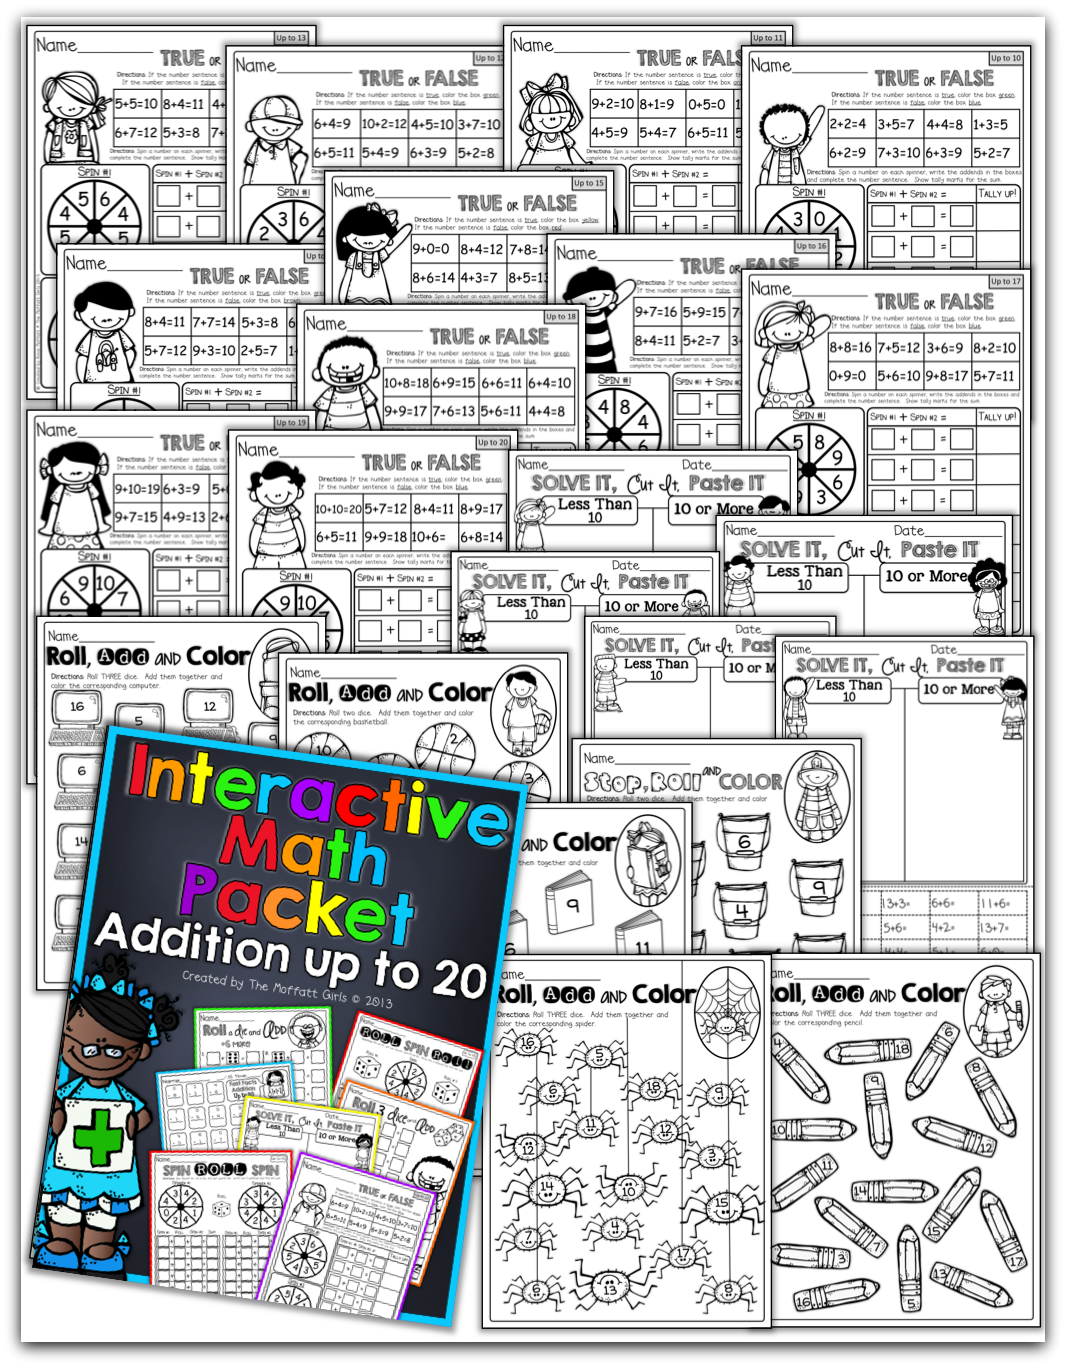 Cut Paste Worksheet Addition To 20